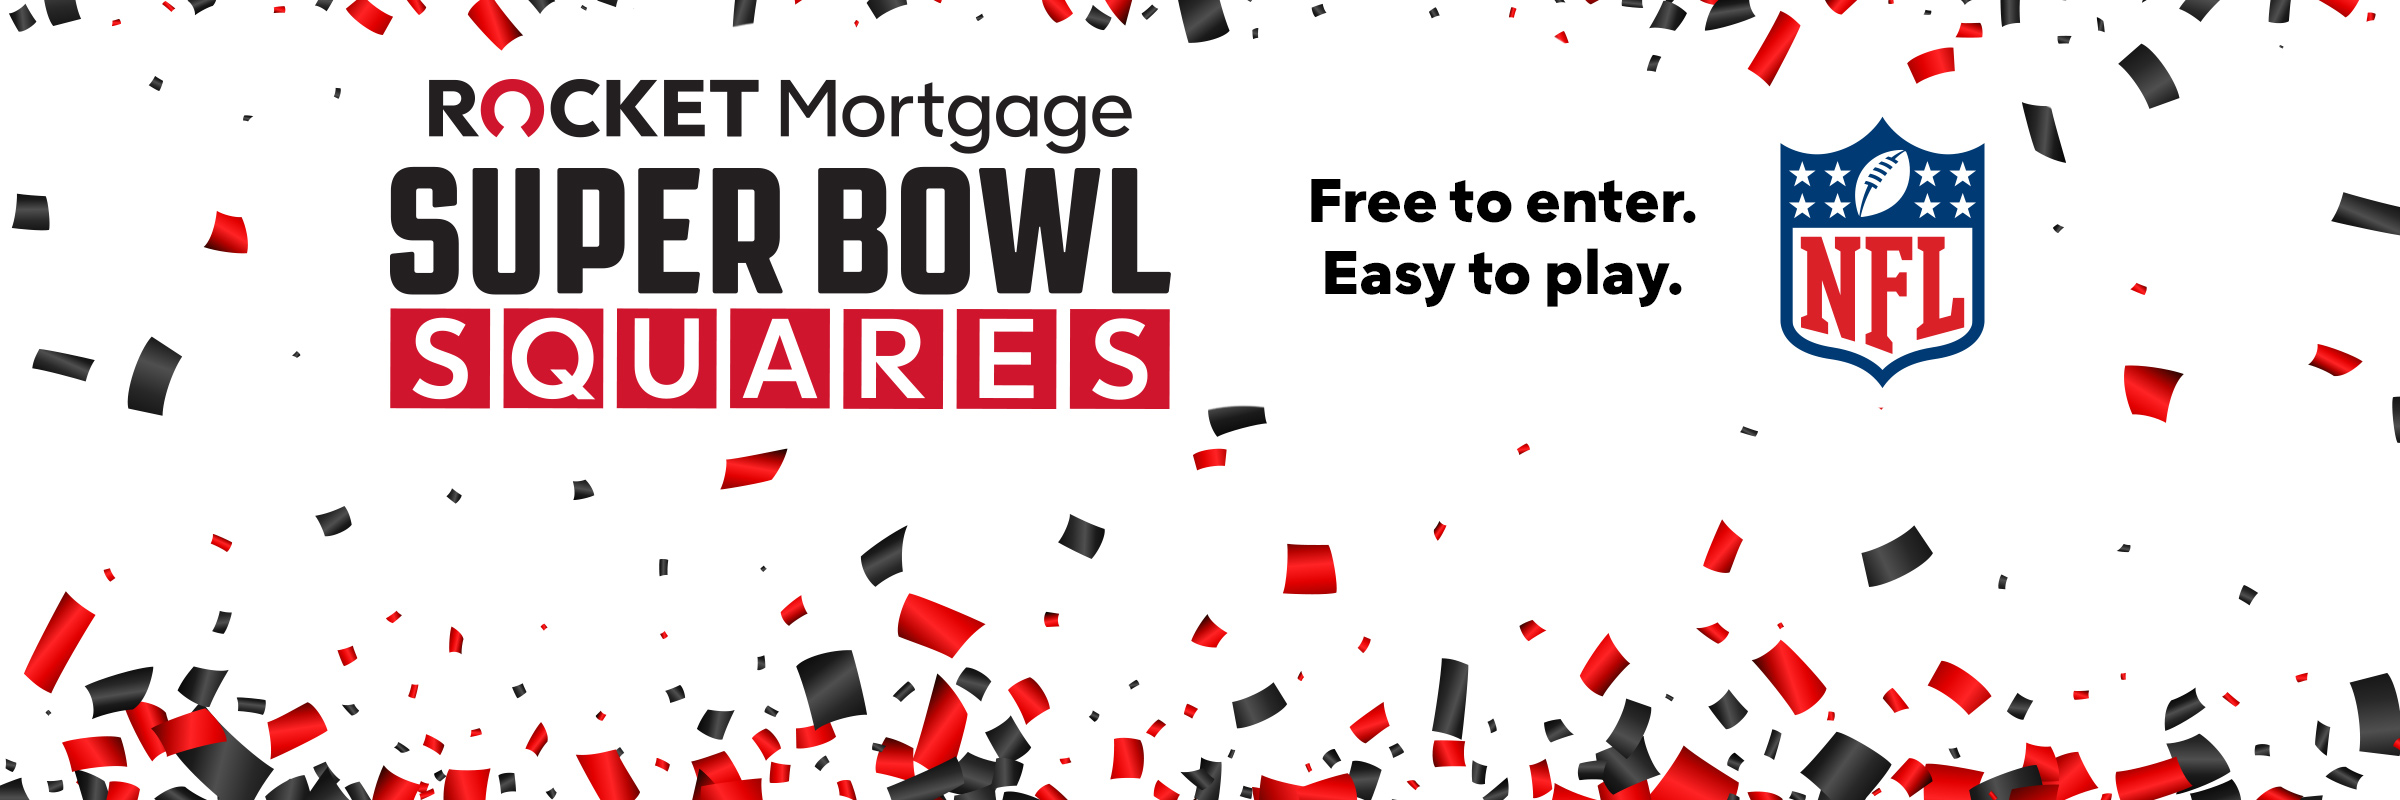 Rocket Mortgage Pays Out 1 75 Million In Largest Ever Free To Play Super Bowl Squares Game Quicken Loans Pressroom